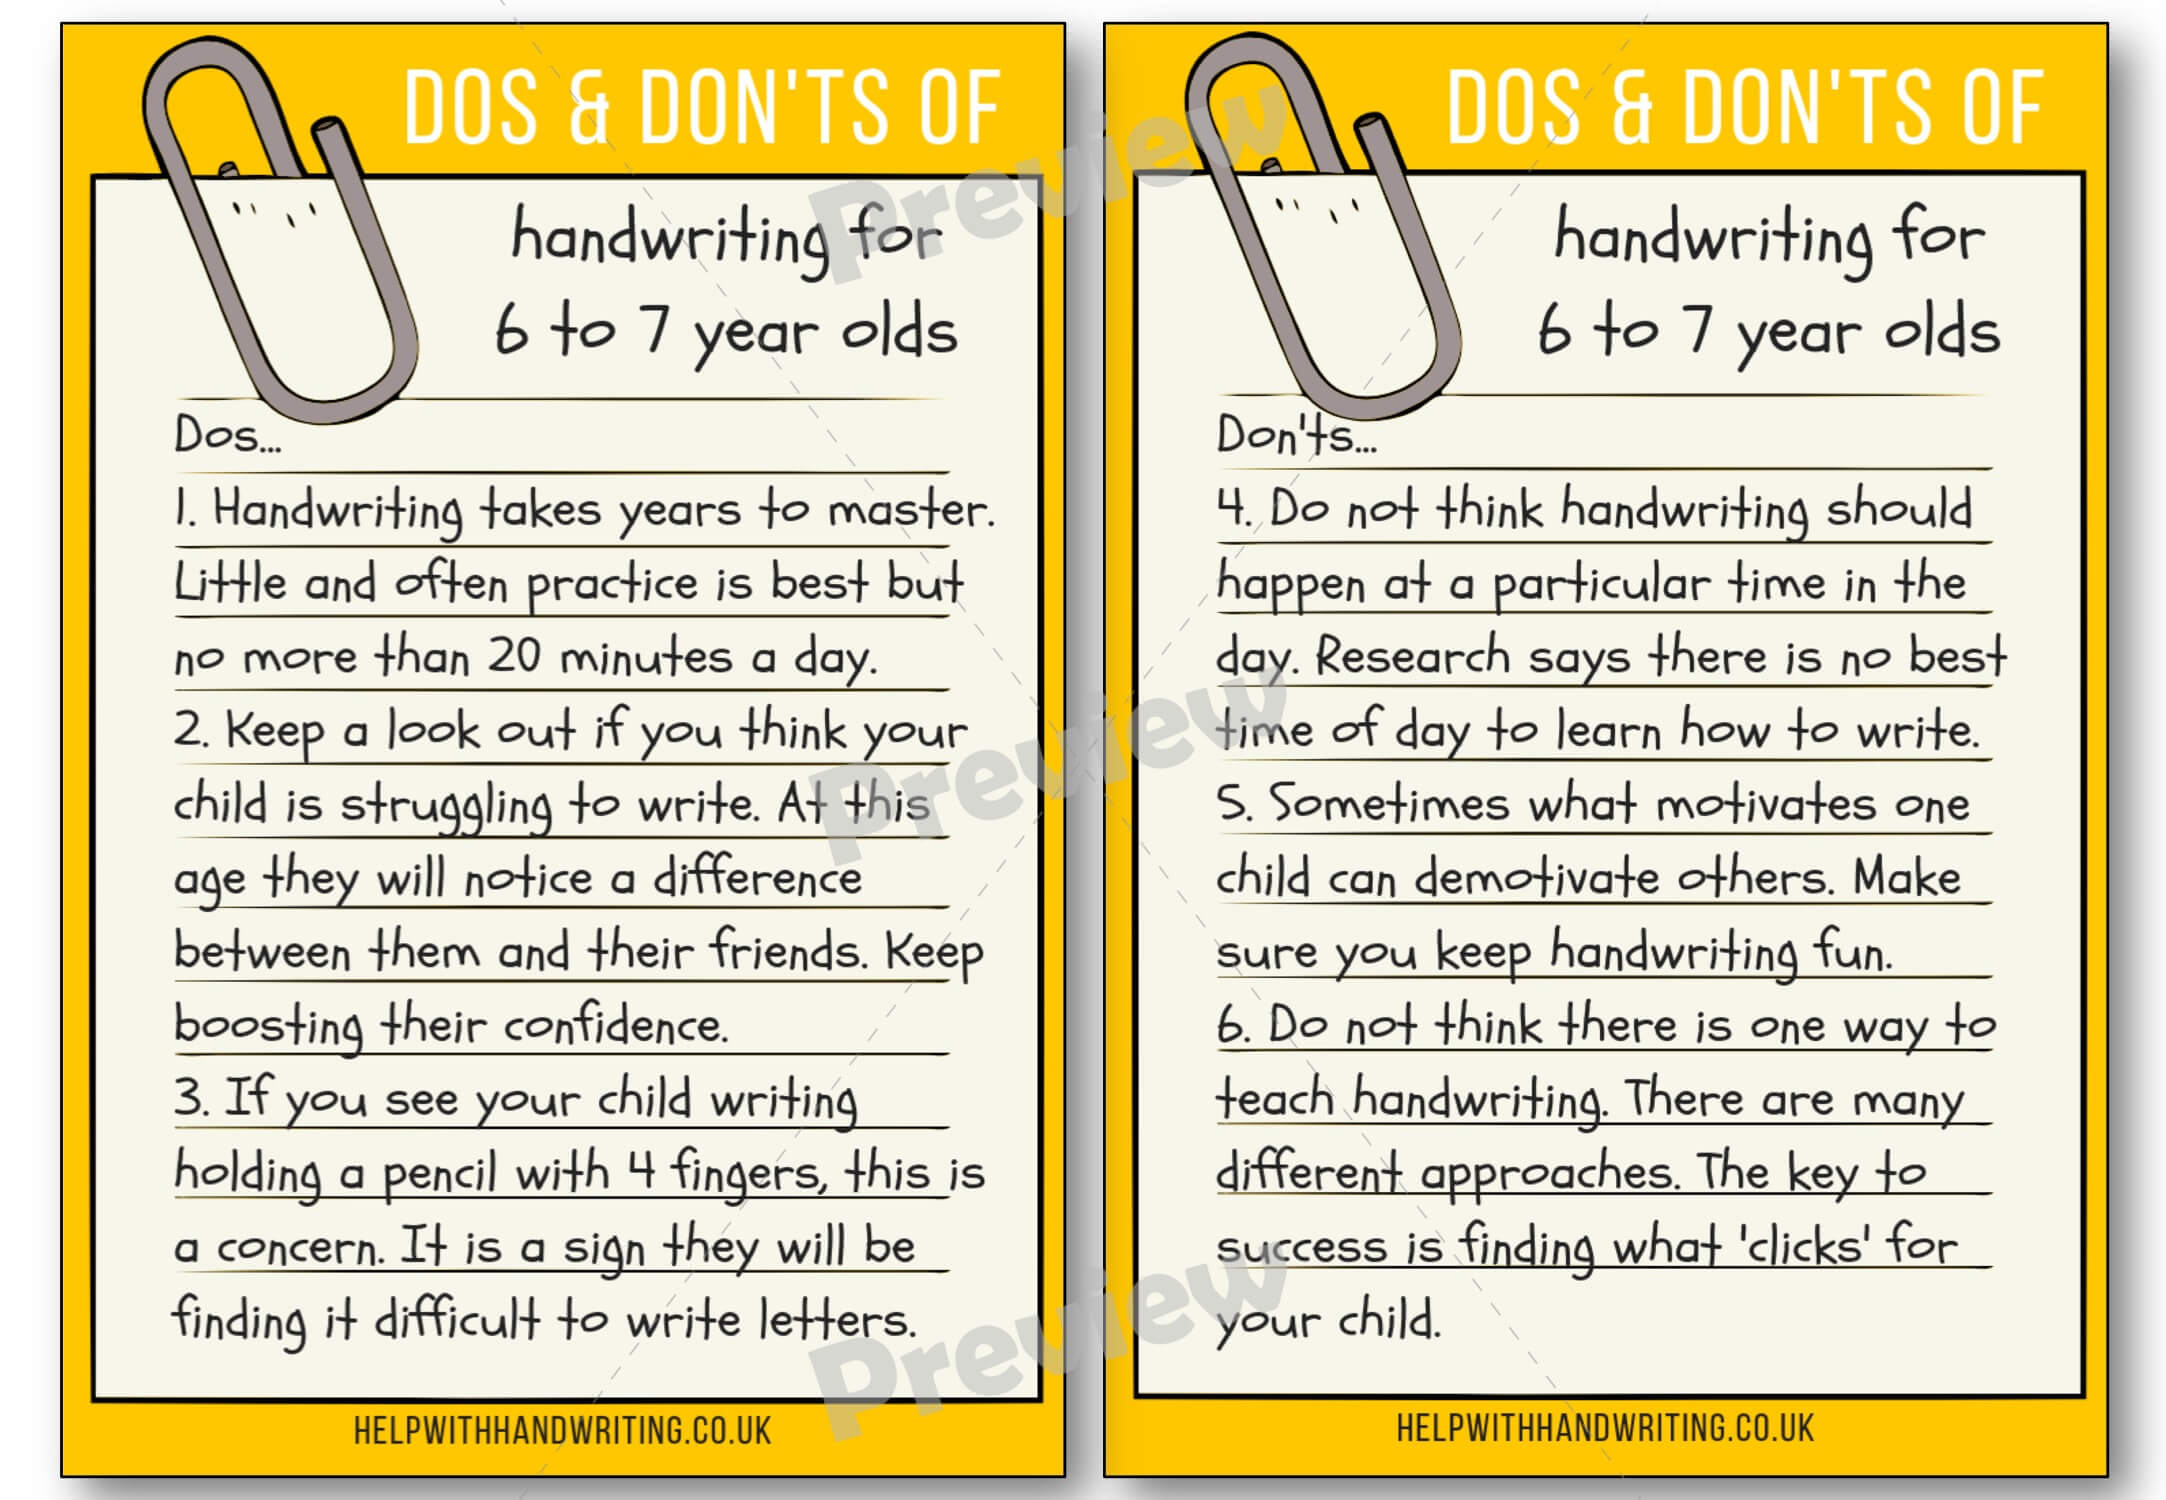 Handwriting dos and don'ts for 6 to 7 years Preview image worksheet